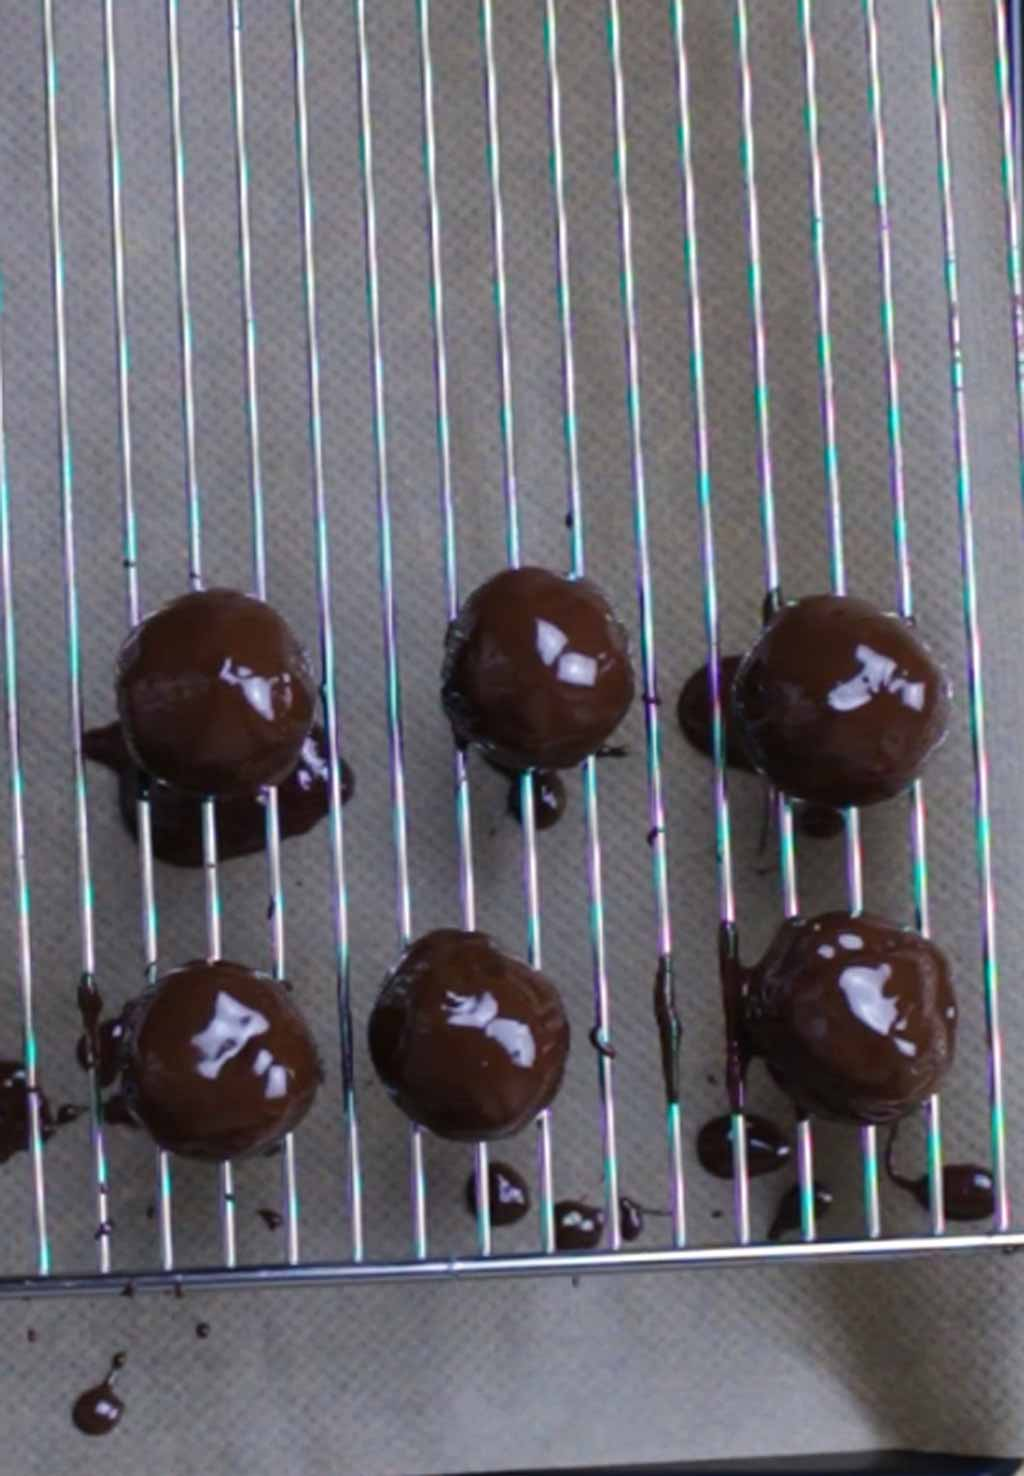 Chocolate Coated Truffles Resting On A Wire Rack